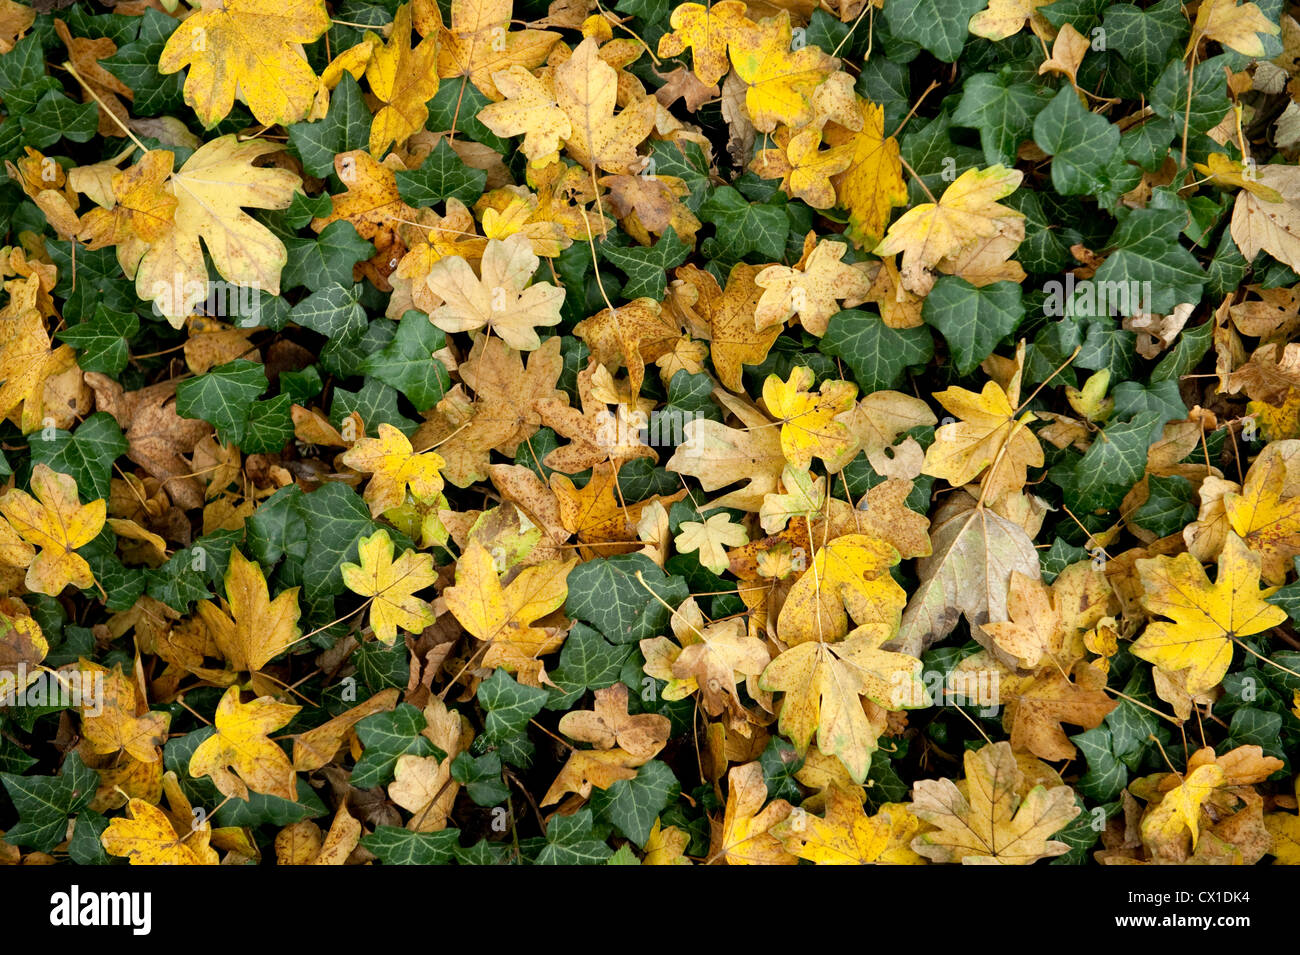 Autumn leaves on woodland floor Field Maple Acer campestre & Ivy Ranscombe Farm Nature Reserve Kent UK yellow - Stock Image